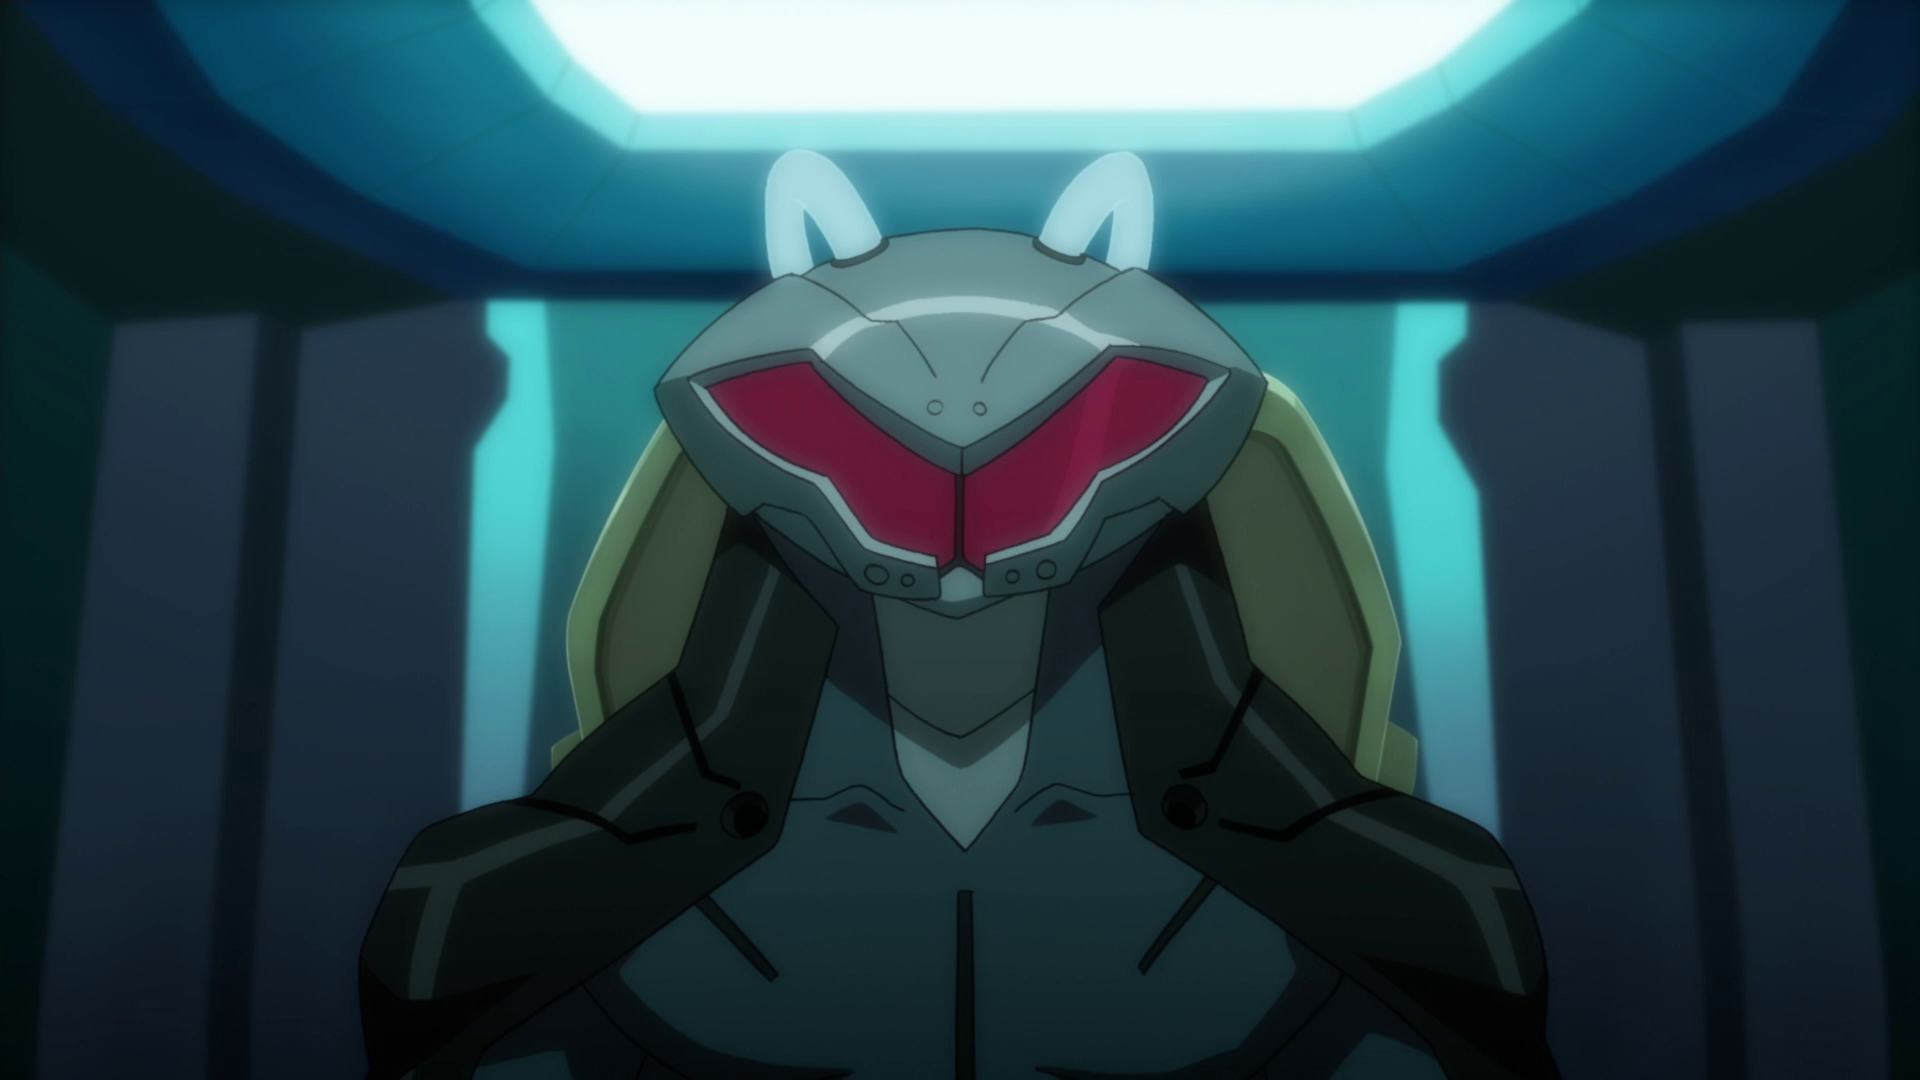 300 Full Movie >> Black Manta | DC Animated Movie Universe Wiki | FANDOM powered by Wikia